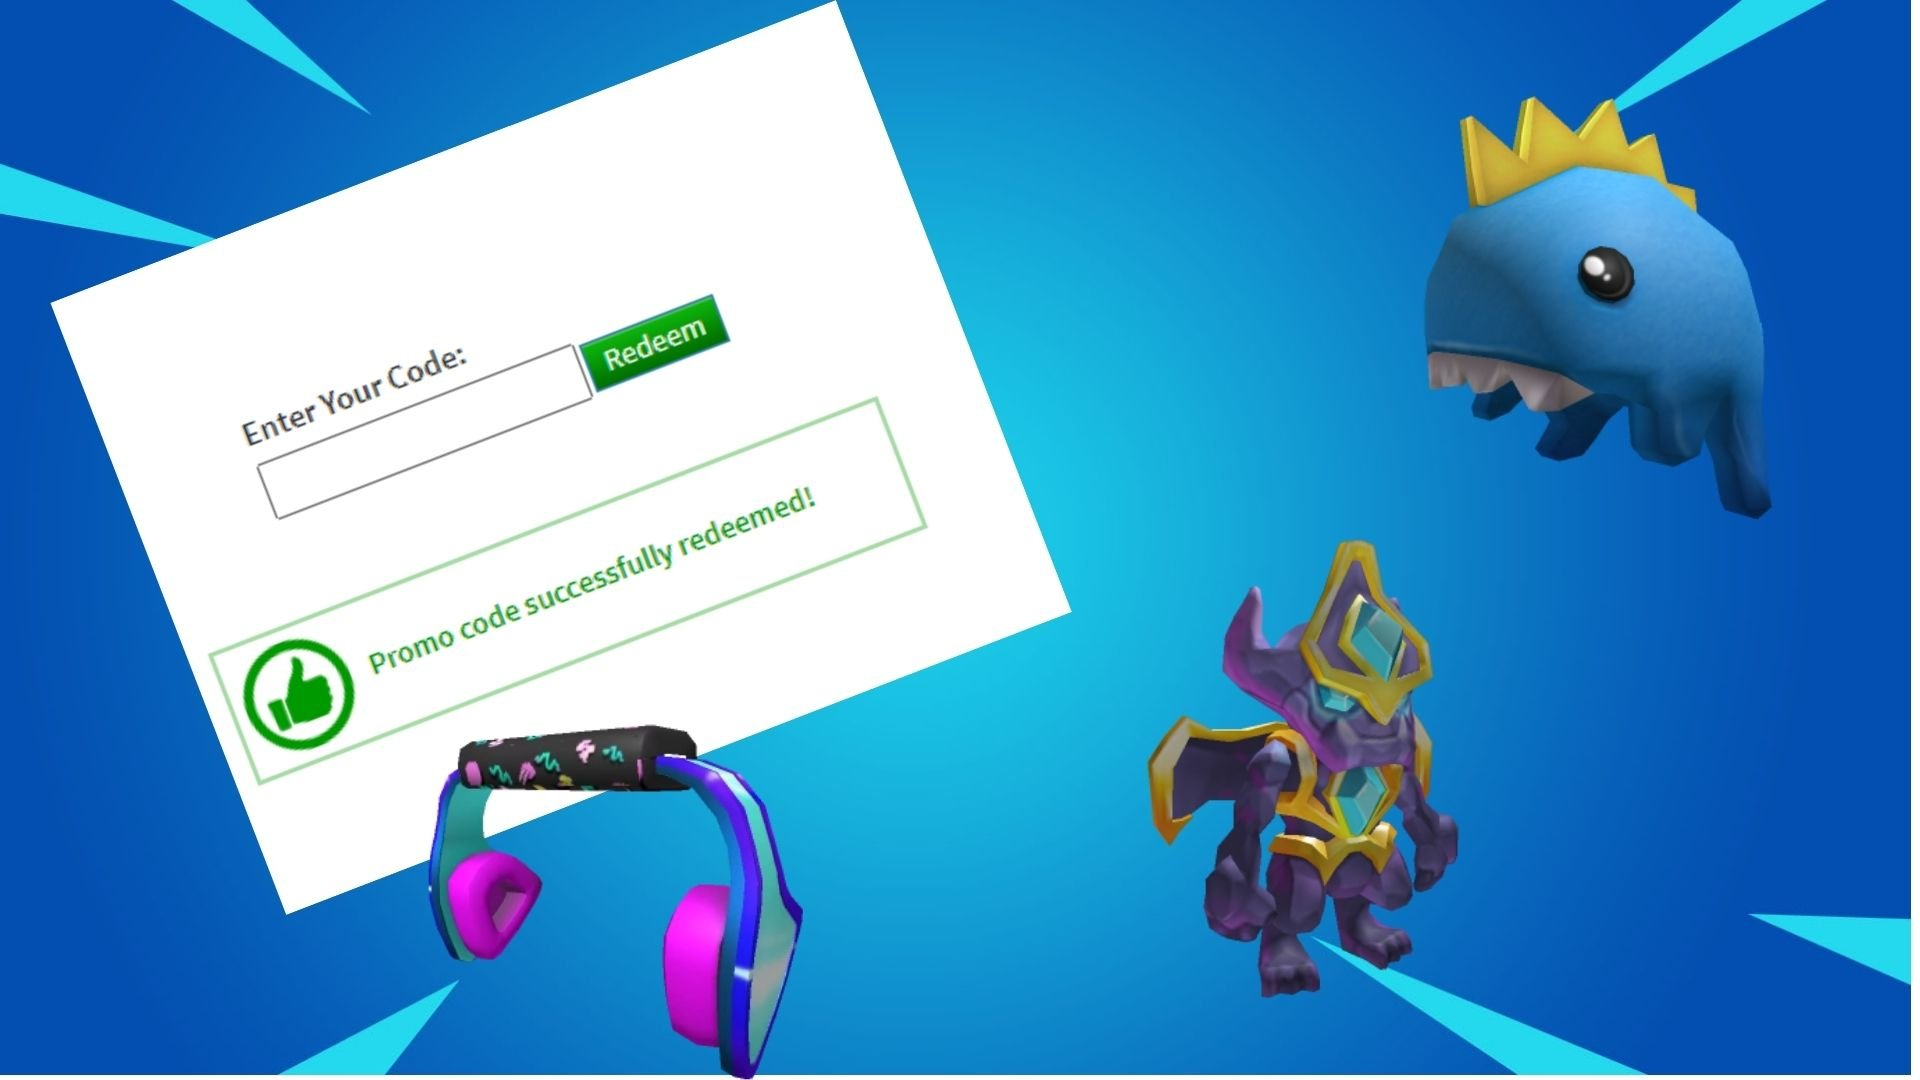 How To Get Highlights Hood On Roblox Brand New Roblox Promo Code List Items Cosmetics Pcpartguide